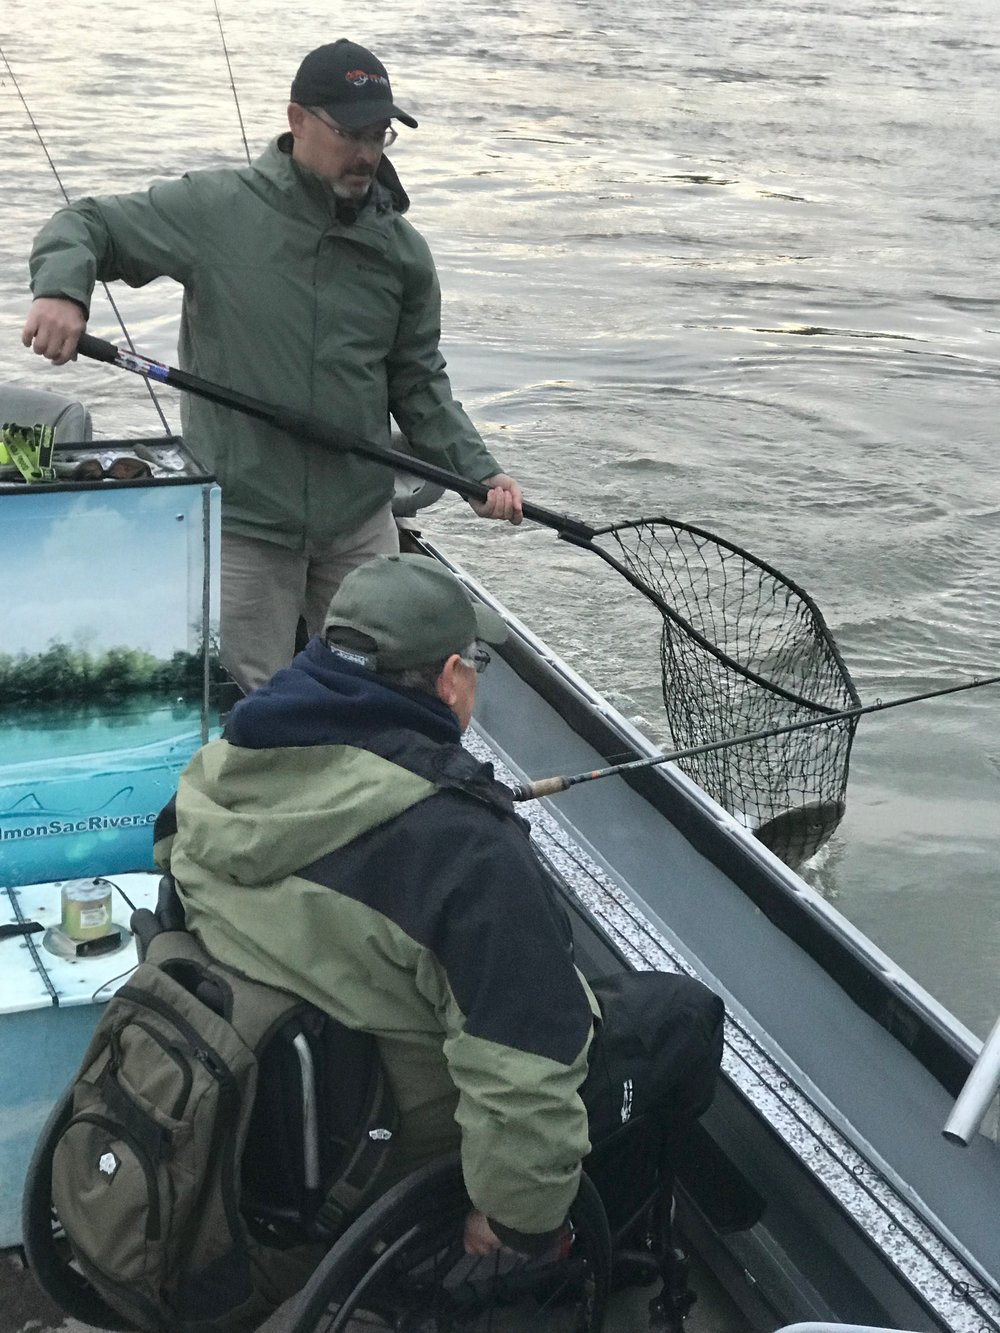 Craig Newton, owner of Will Fish Tackle, in Auburn, Ca (  willfishtackle.com ) helps fishing guide Mike Rasmussen and nets a quality striped bass, caught on a live minnow.